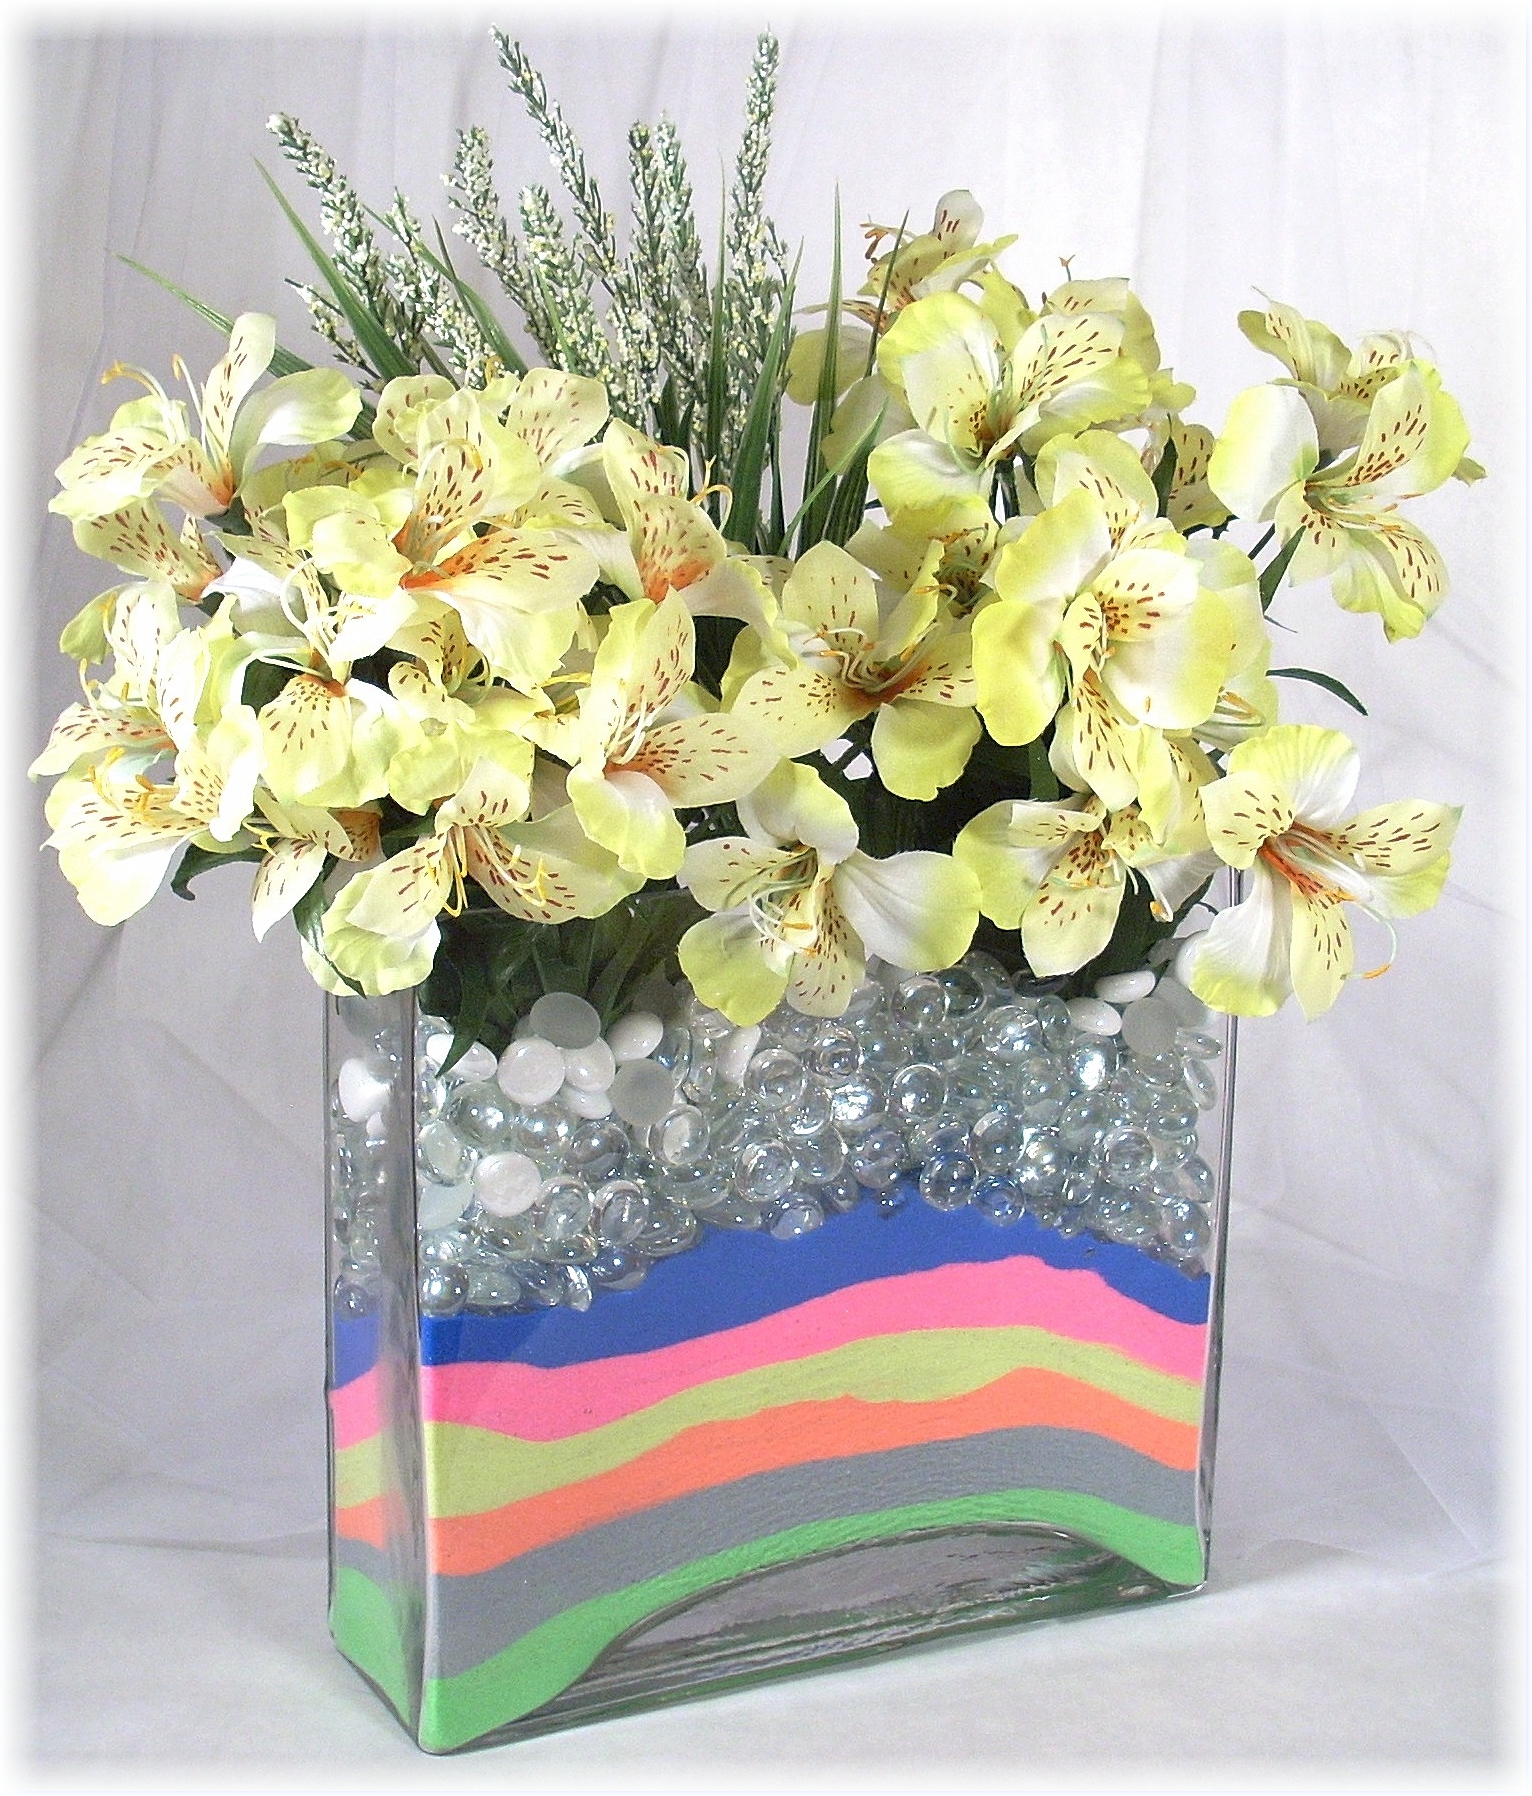 Exciting new unity sand tribute kit now available for weddings rectangular vase bermuda sands color scheme make a speach pour the sand painted desert reviewsmspy